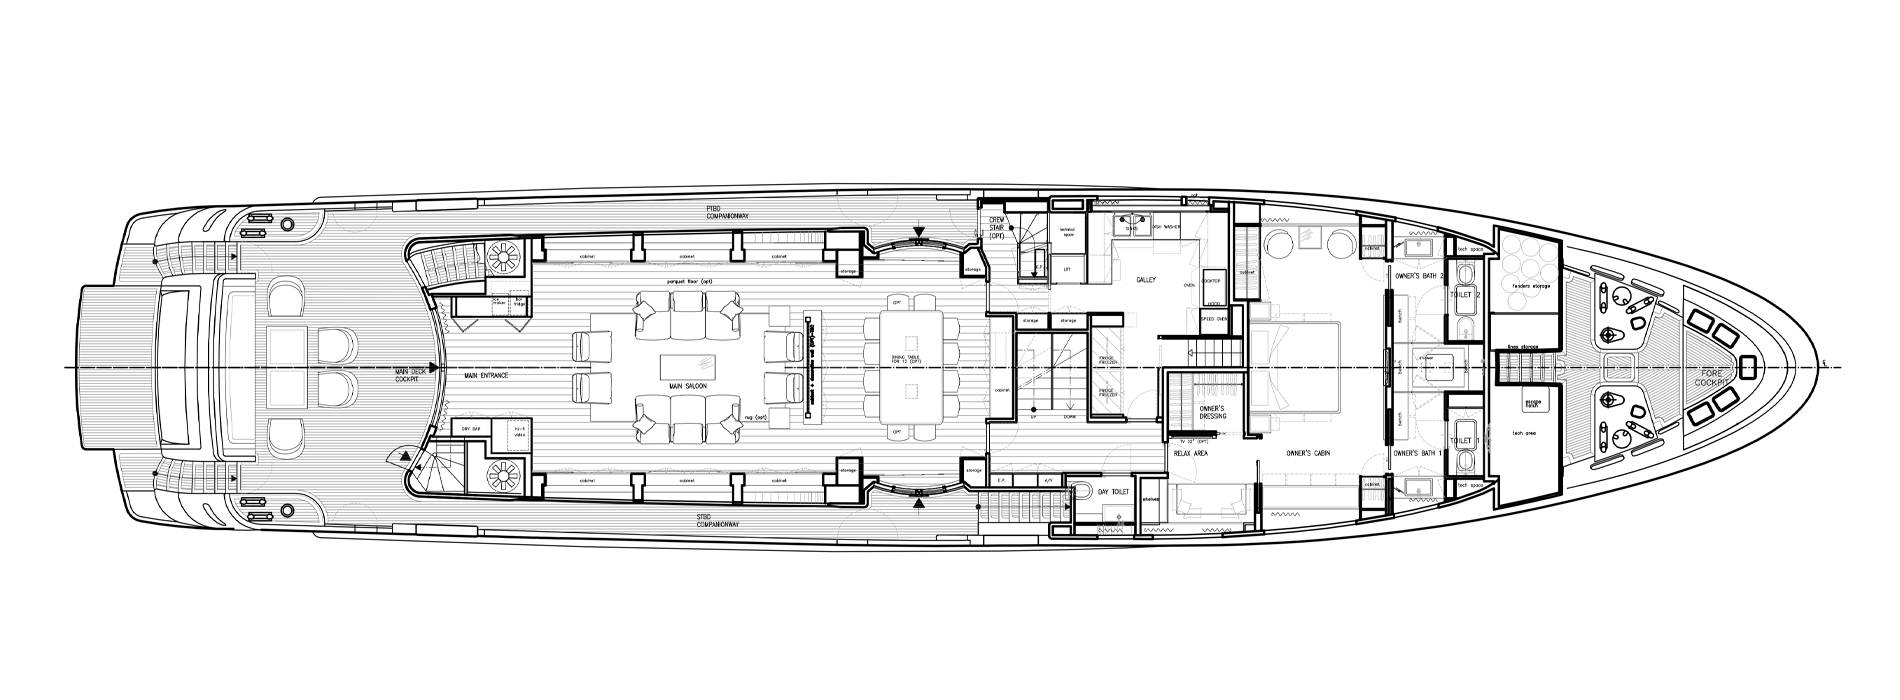 Sanlorenzo Yachts SD122-27 under offer Main deck